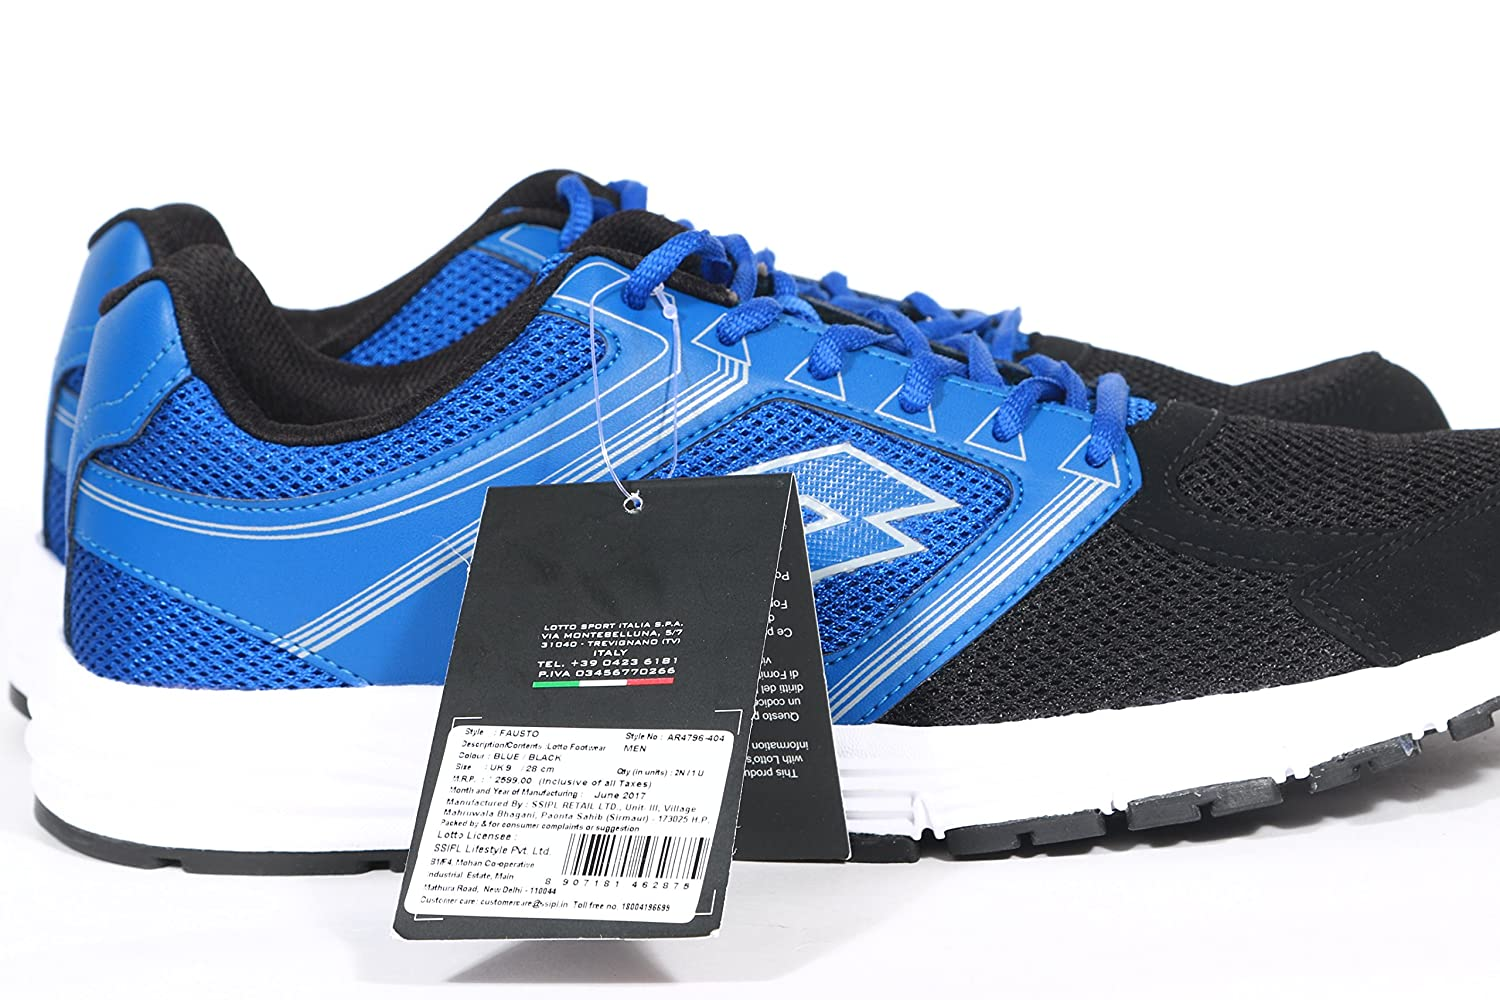 e1f4a40e Lotto Men's Fausto Blue/Black Running Shoes-10 UK/India (44 EU)  (AR4796-404): Buy Online at Low Prices in India - Amazon.in